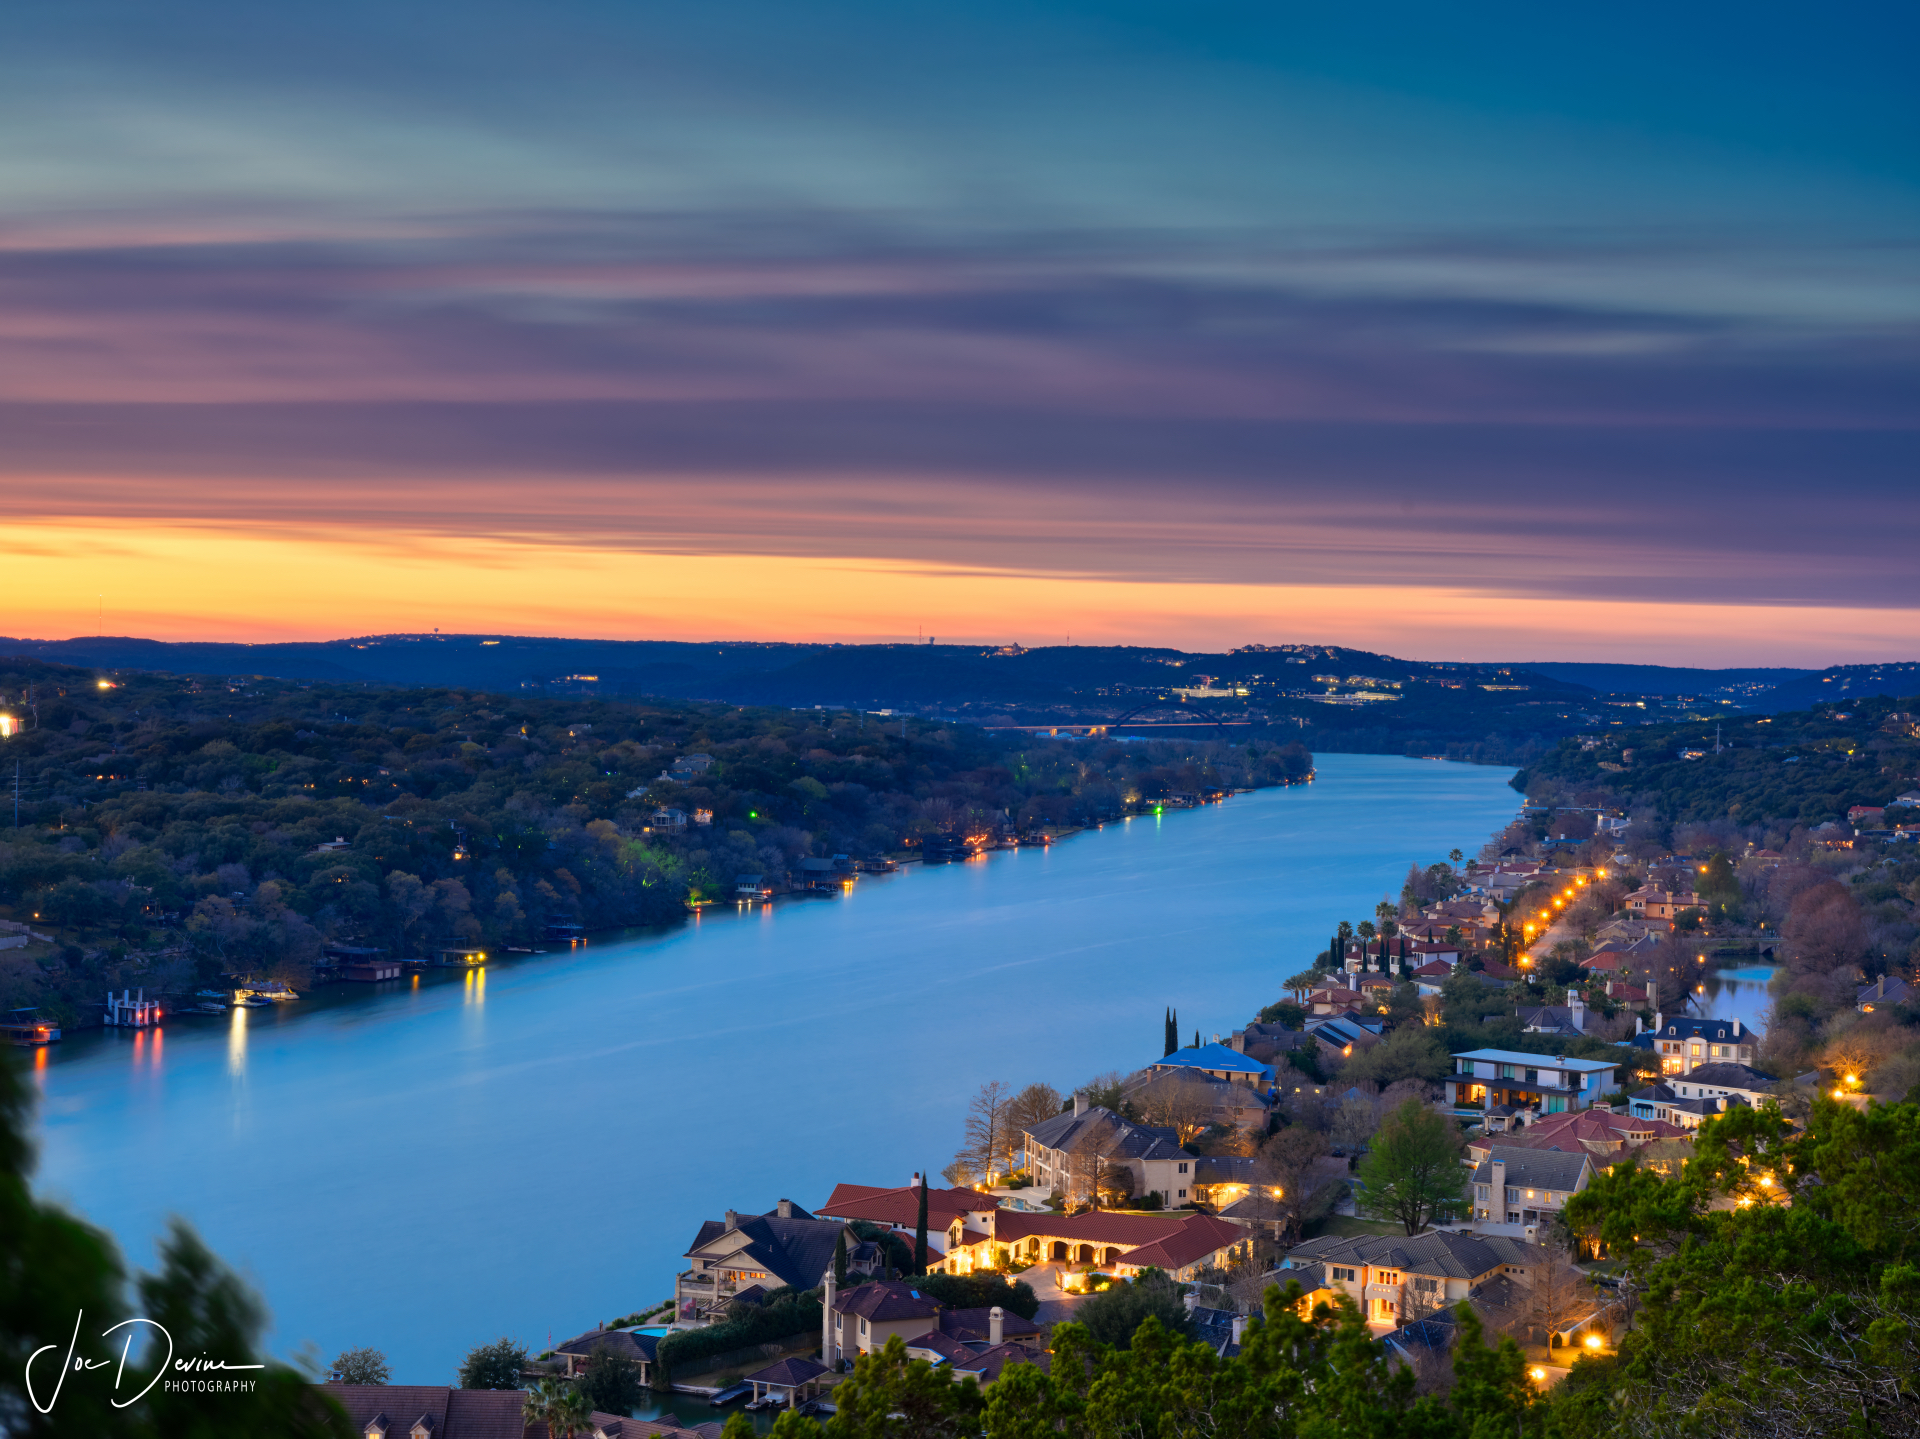 Mount Bonnell View at Sunset